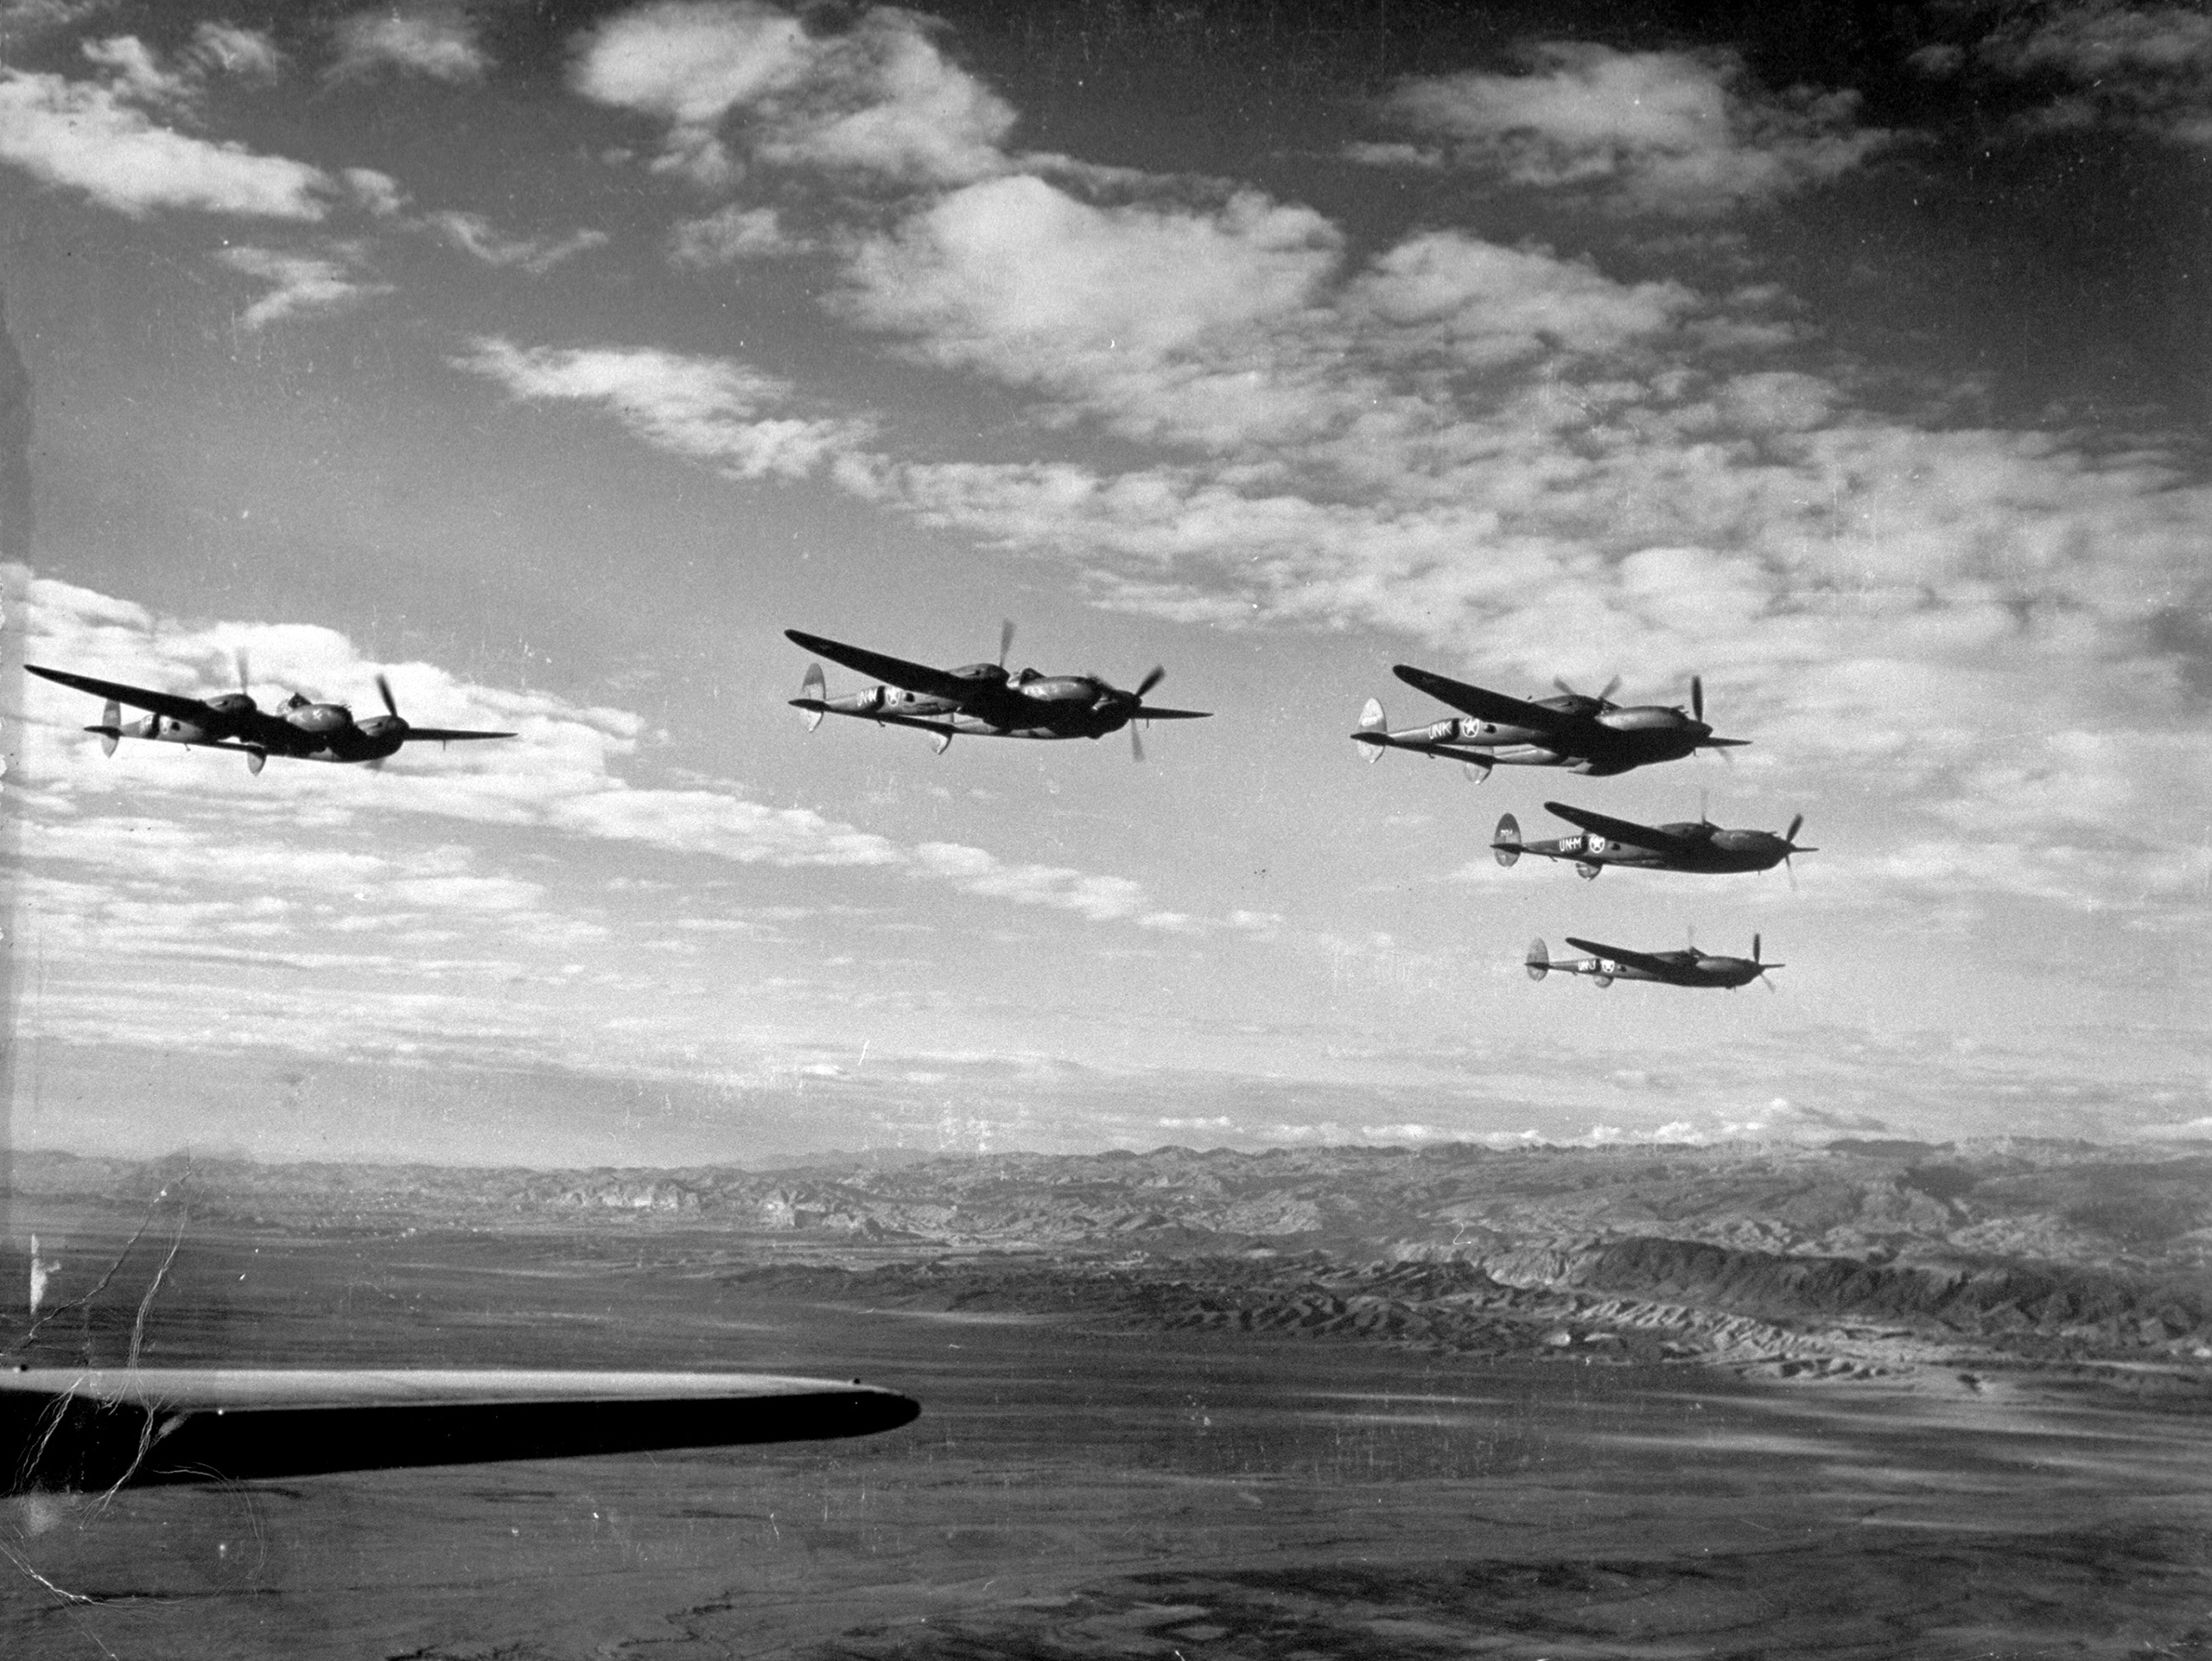 Protective screen of five American P-38 fighter planes over the arid Atlas mountains, viewed from over tail of an American medium bomber which they are escorting during its bombing mission to its target at El Aliuna airbase in Tunis.